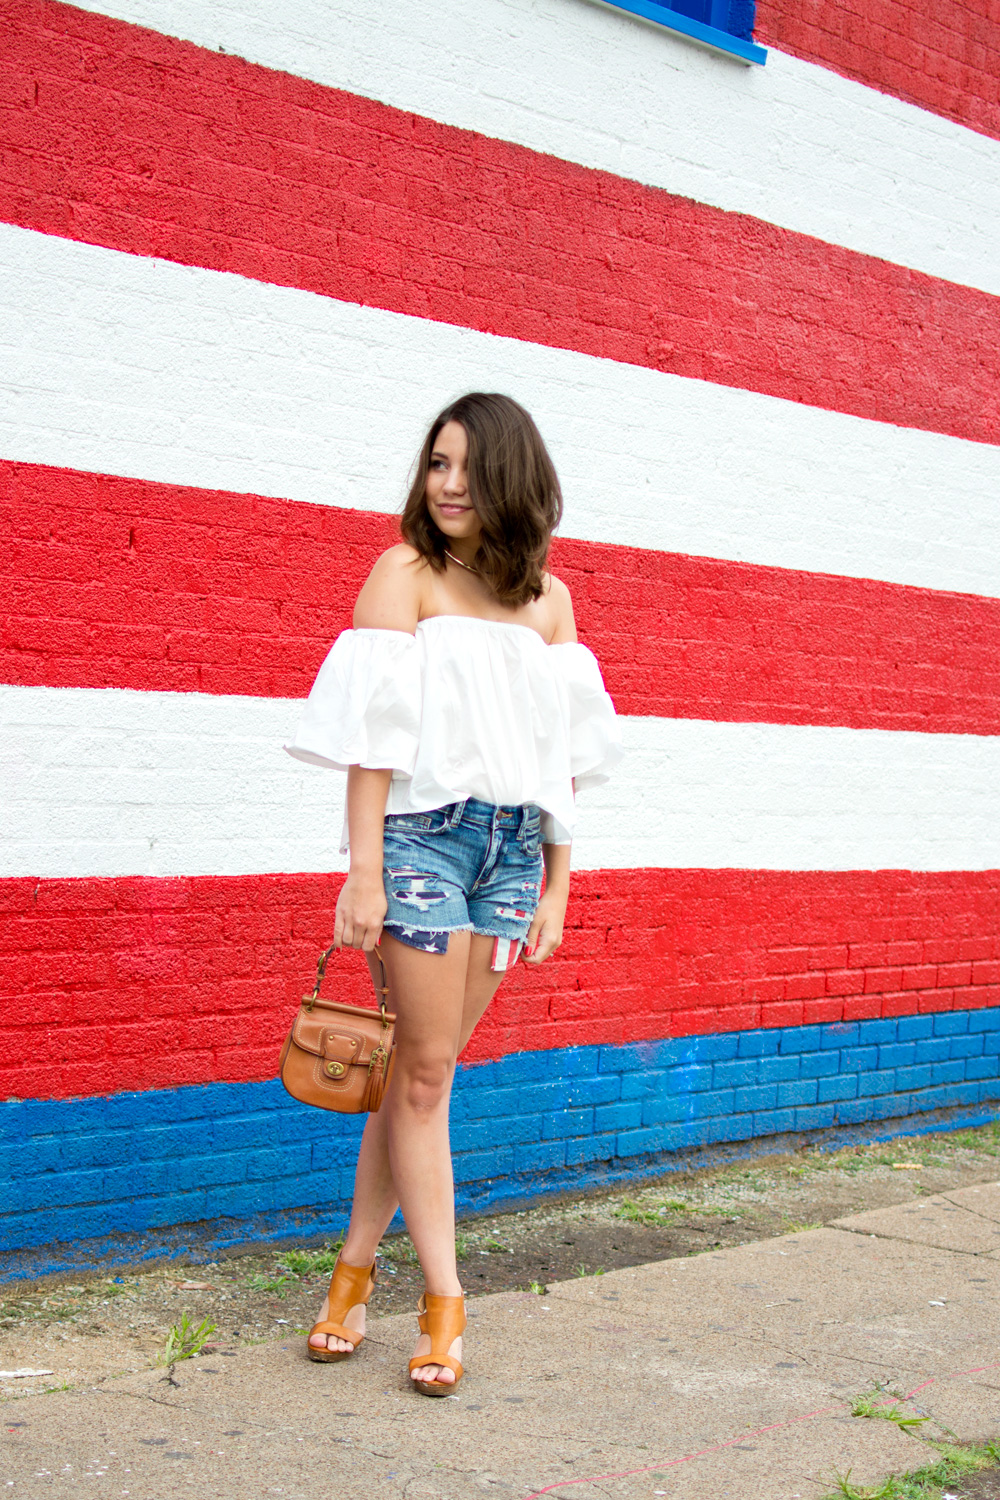 4th of July Outfit idea with american flag cutoff shorts and white off the shoulder top